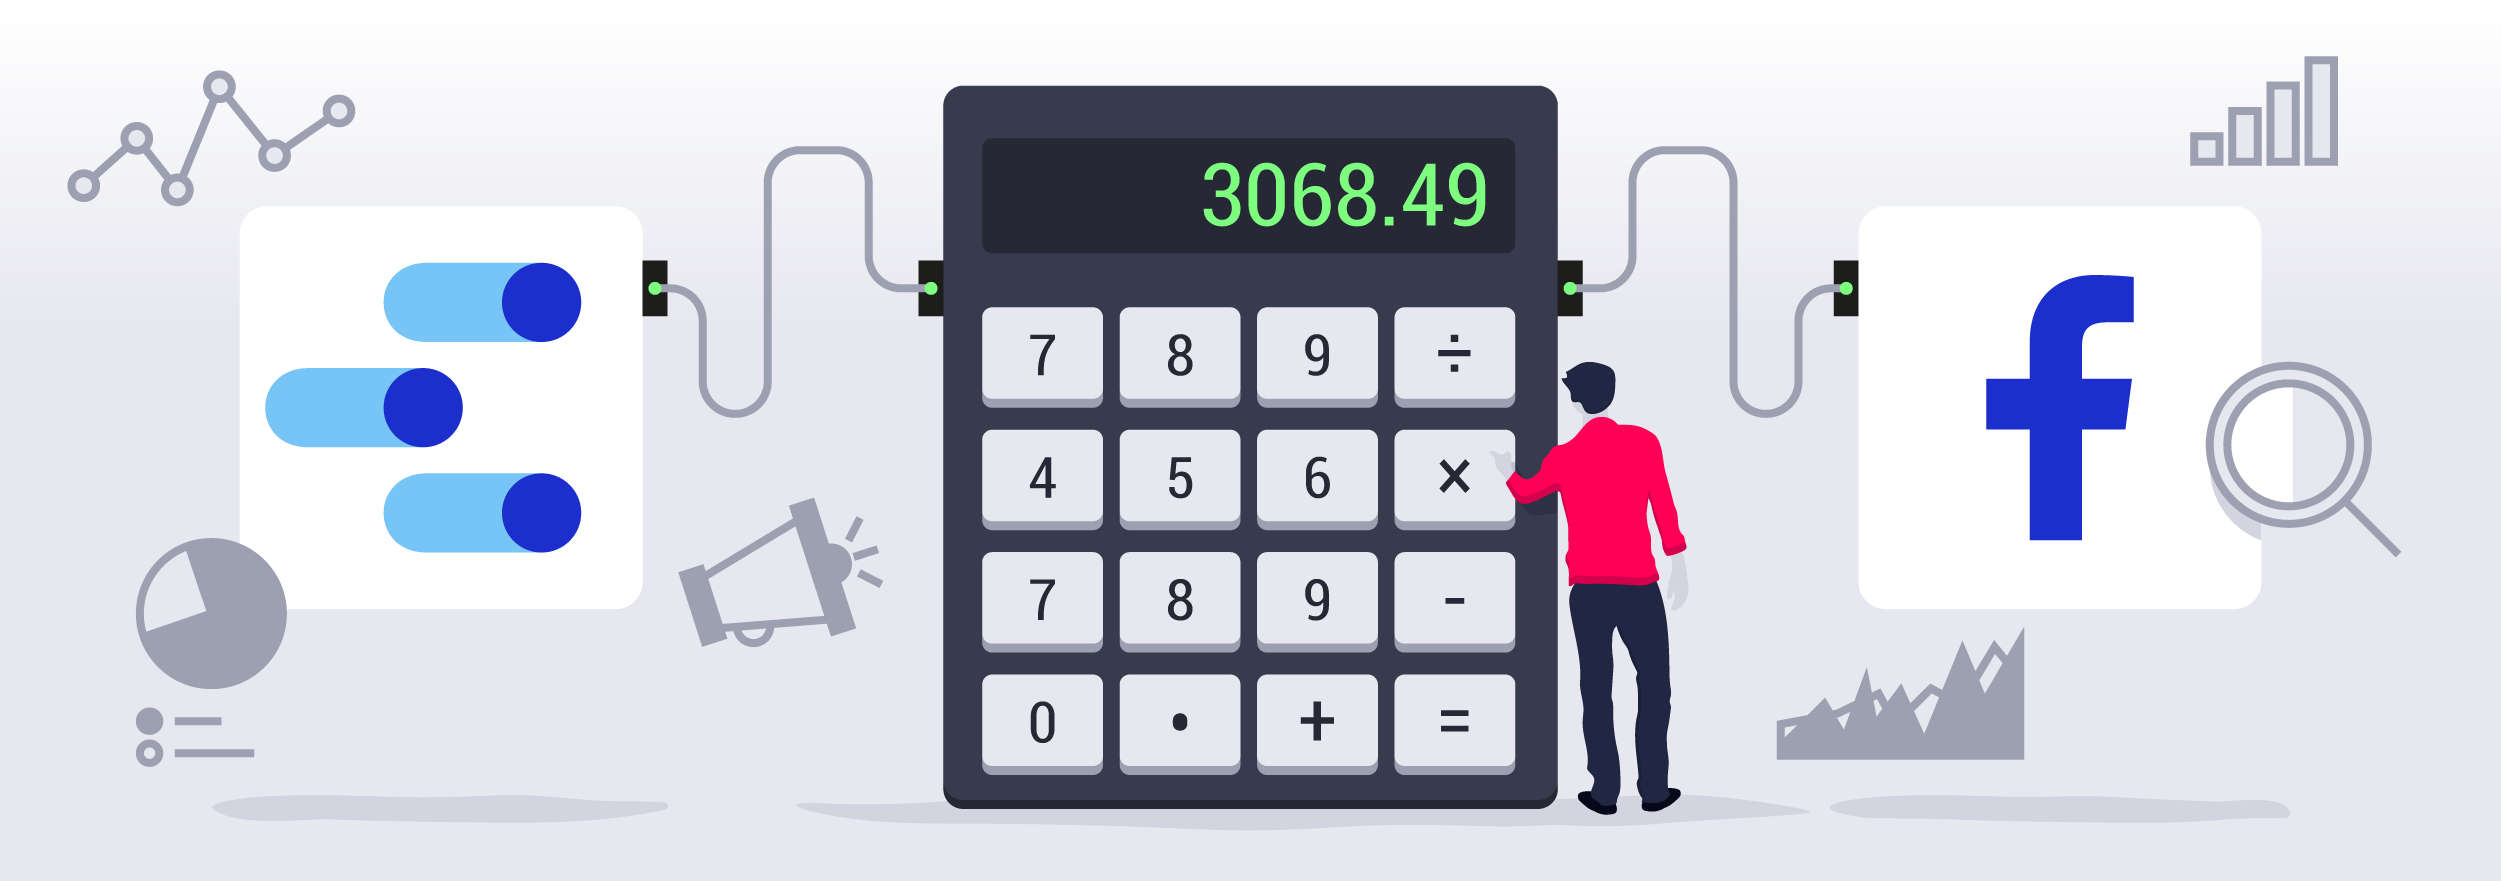 Create your own ad spend calculator with Google Data Studio